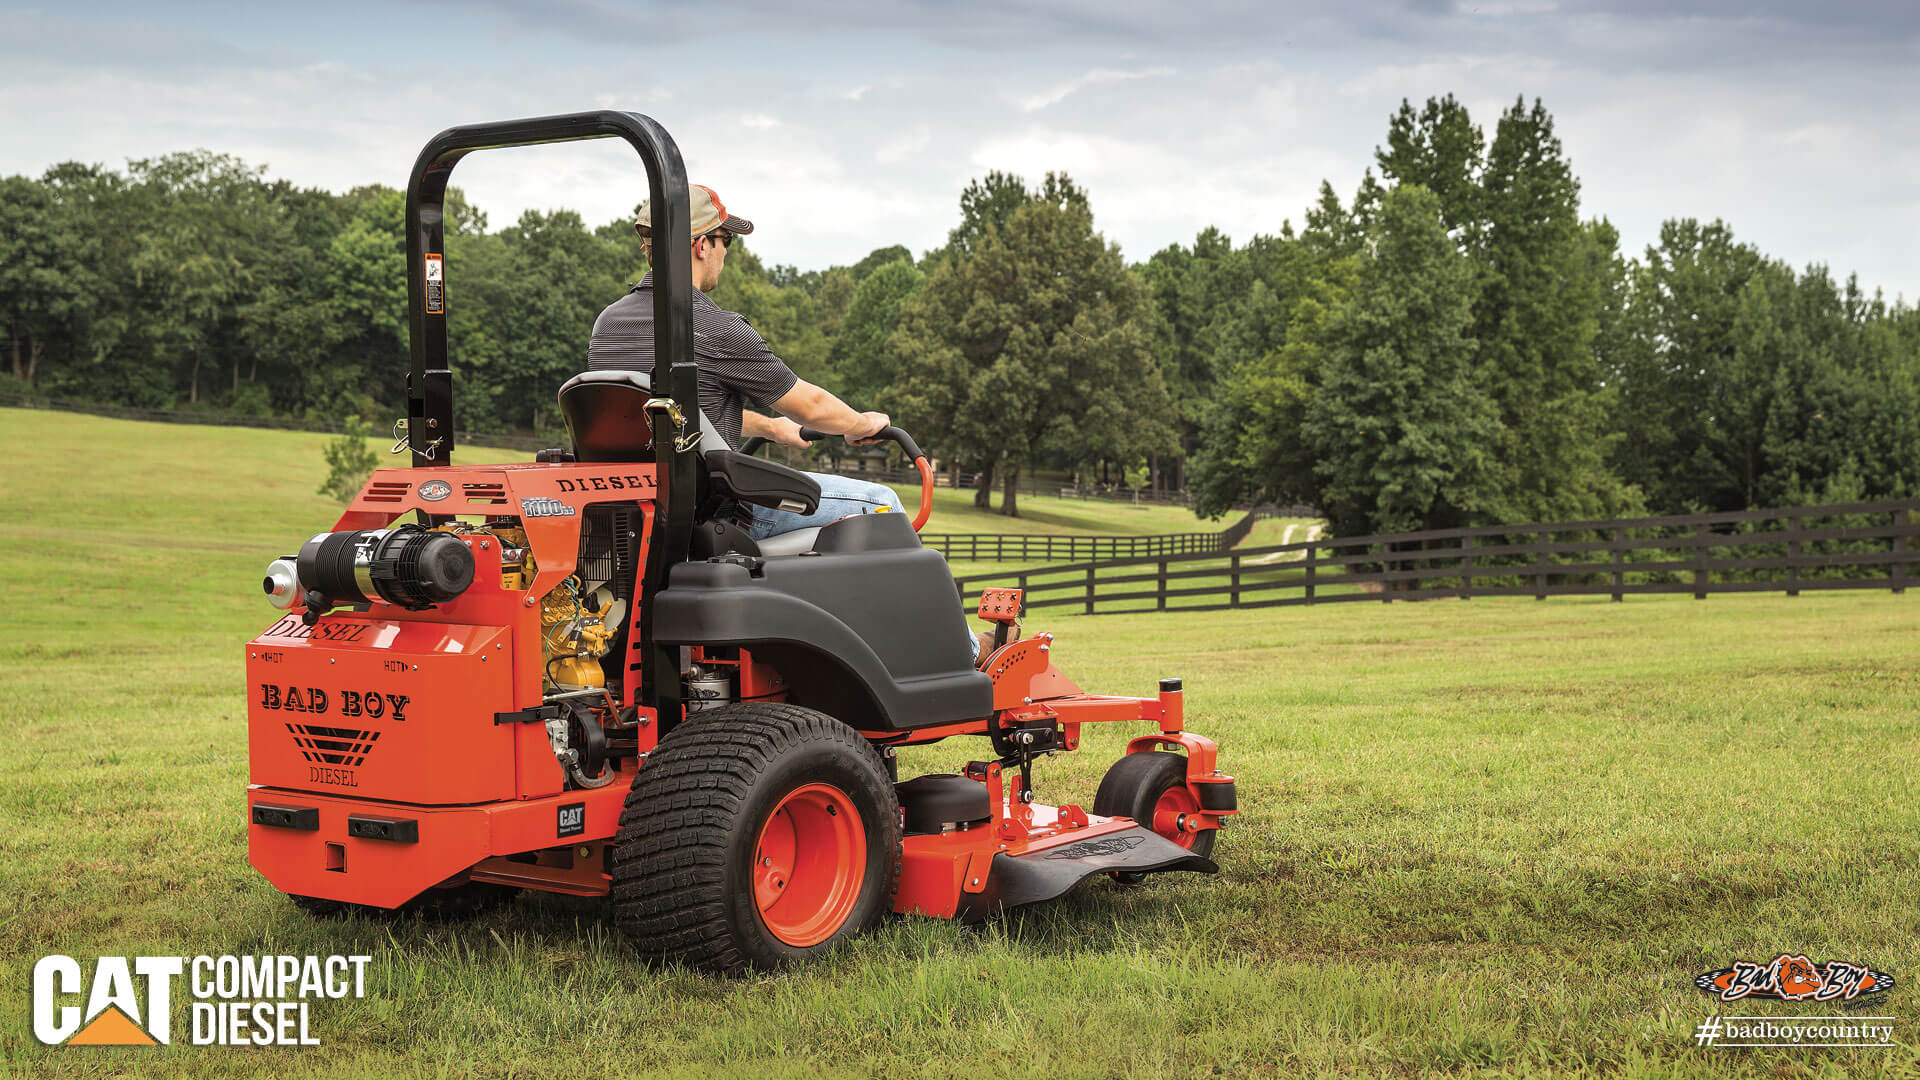 2017 Bad Boy Mowers Compact Diesel 6100 in Mechanicsburg, Pennsylvania